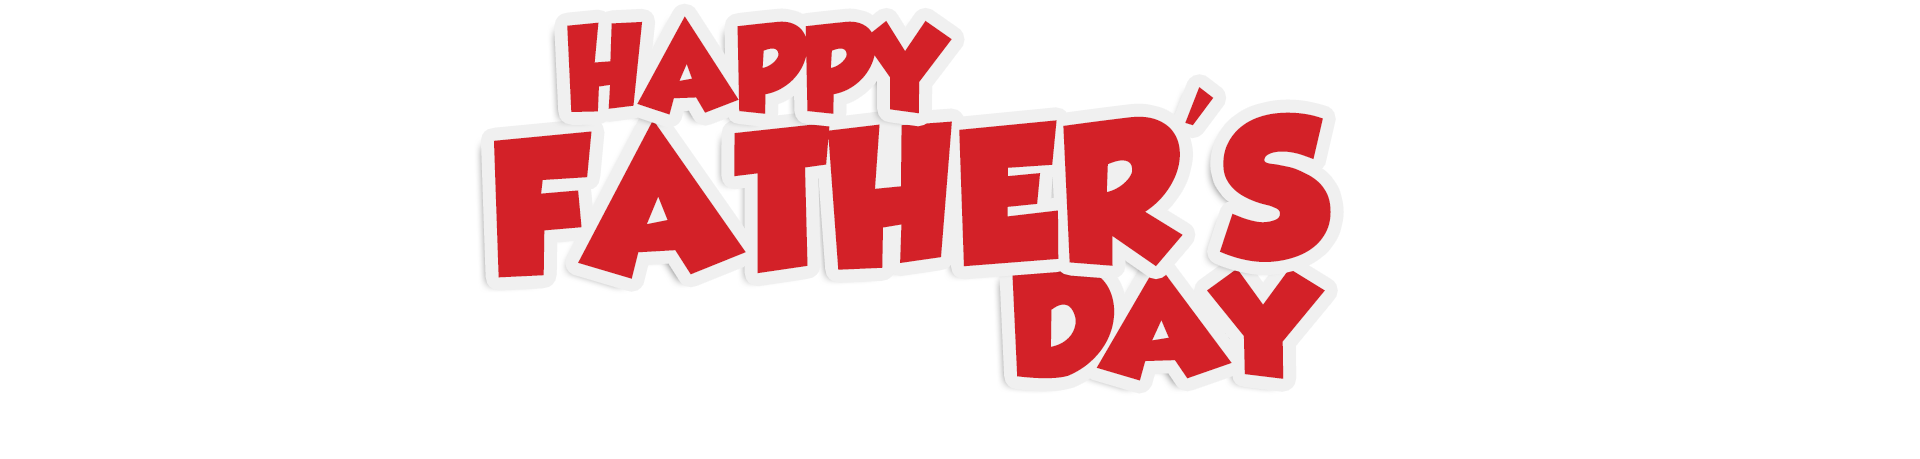 June clipart father's day. Fathers transparent png pictures